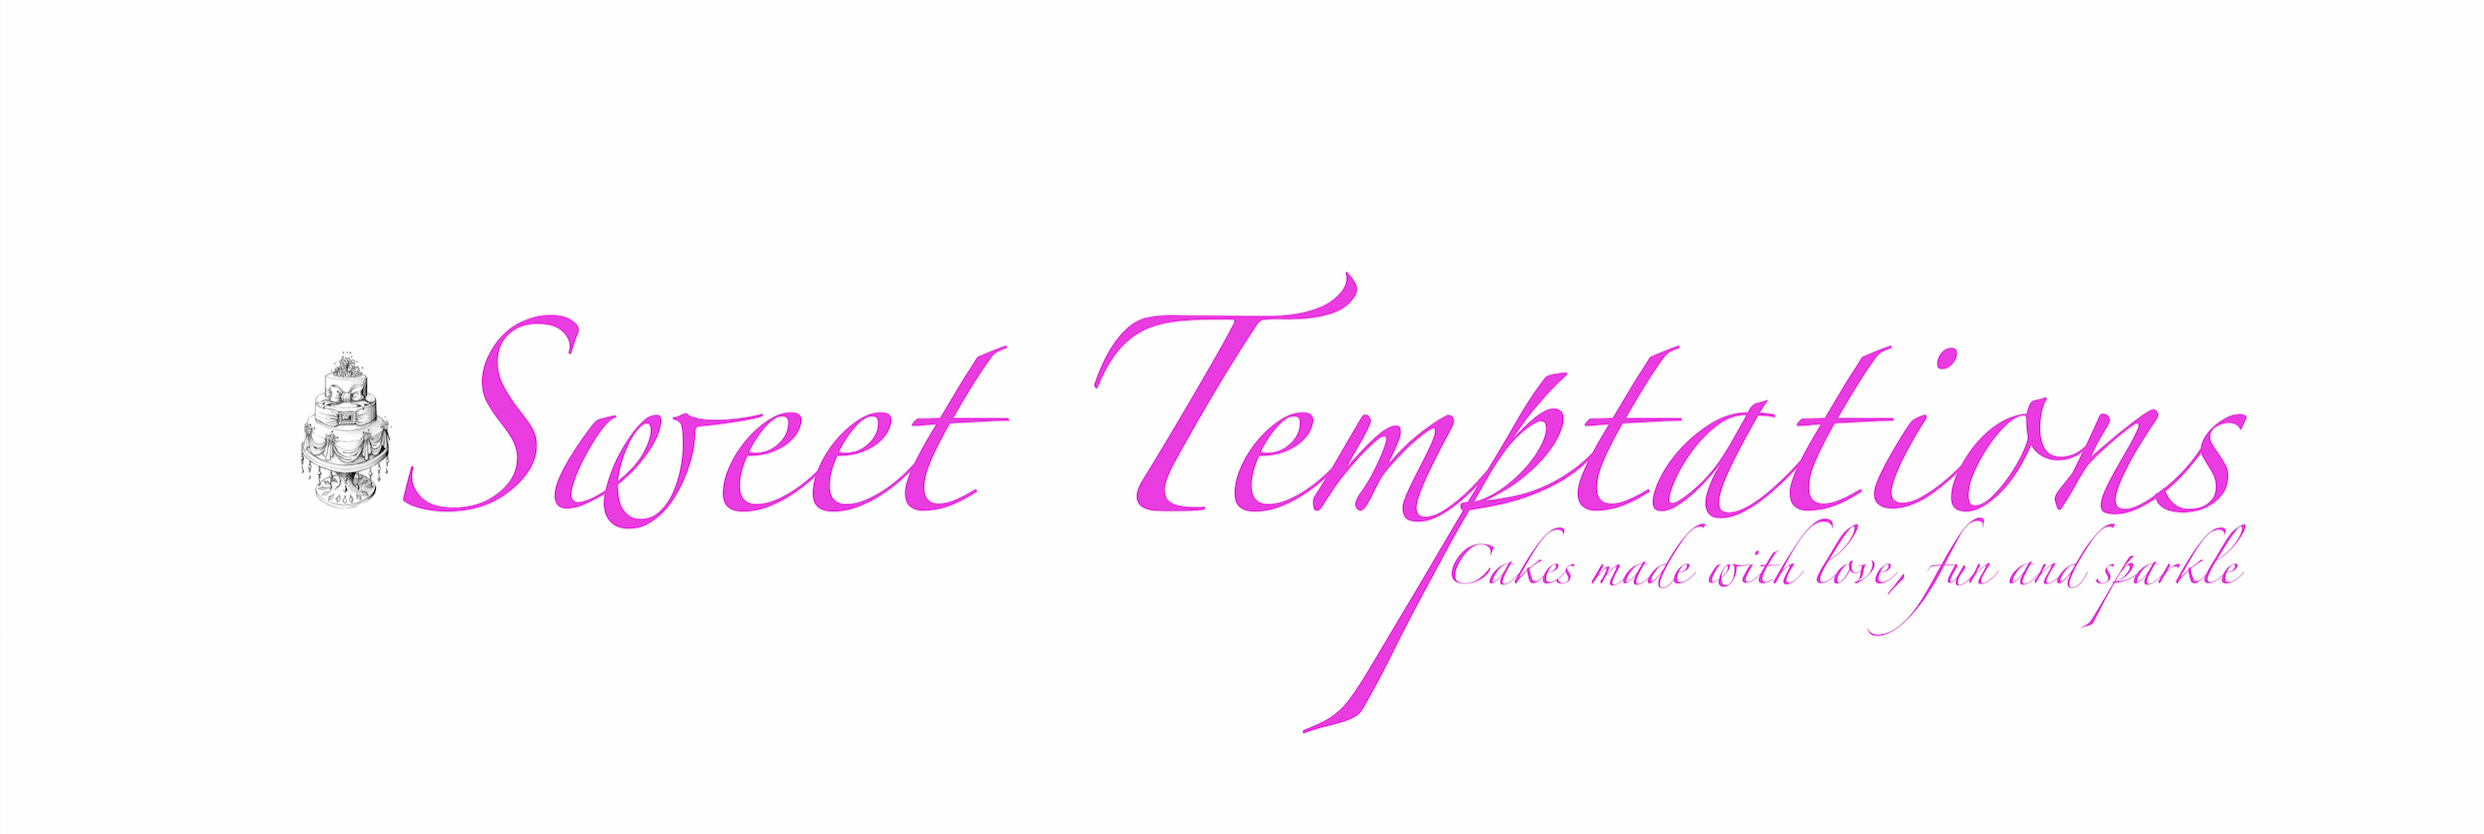 Claire's Sweet Temptations